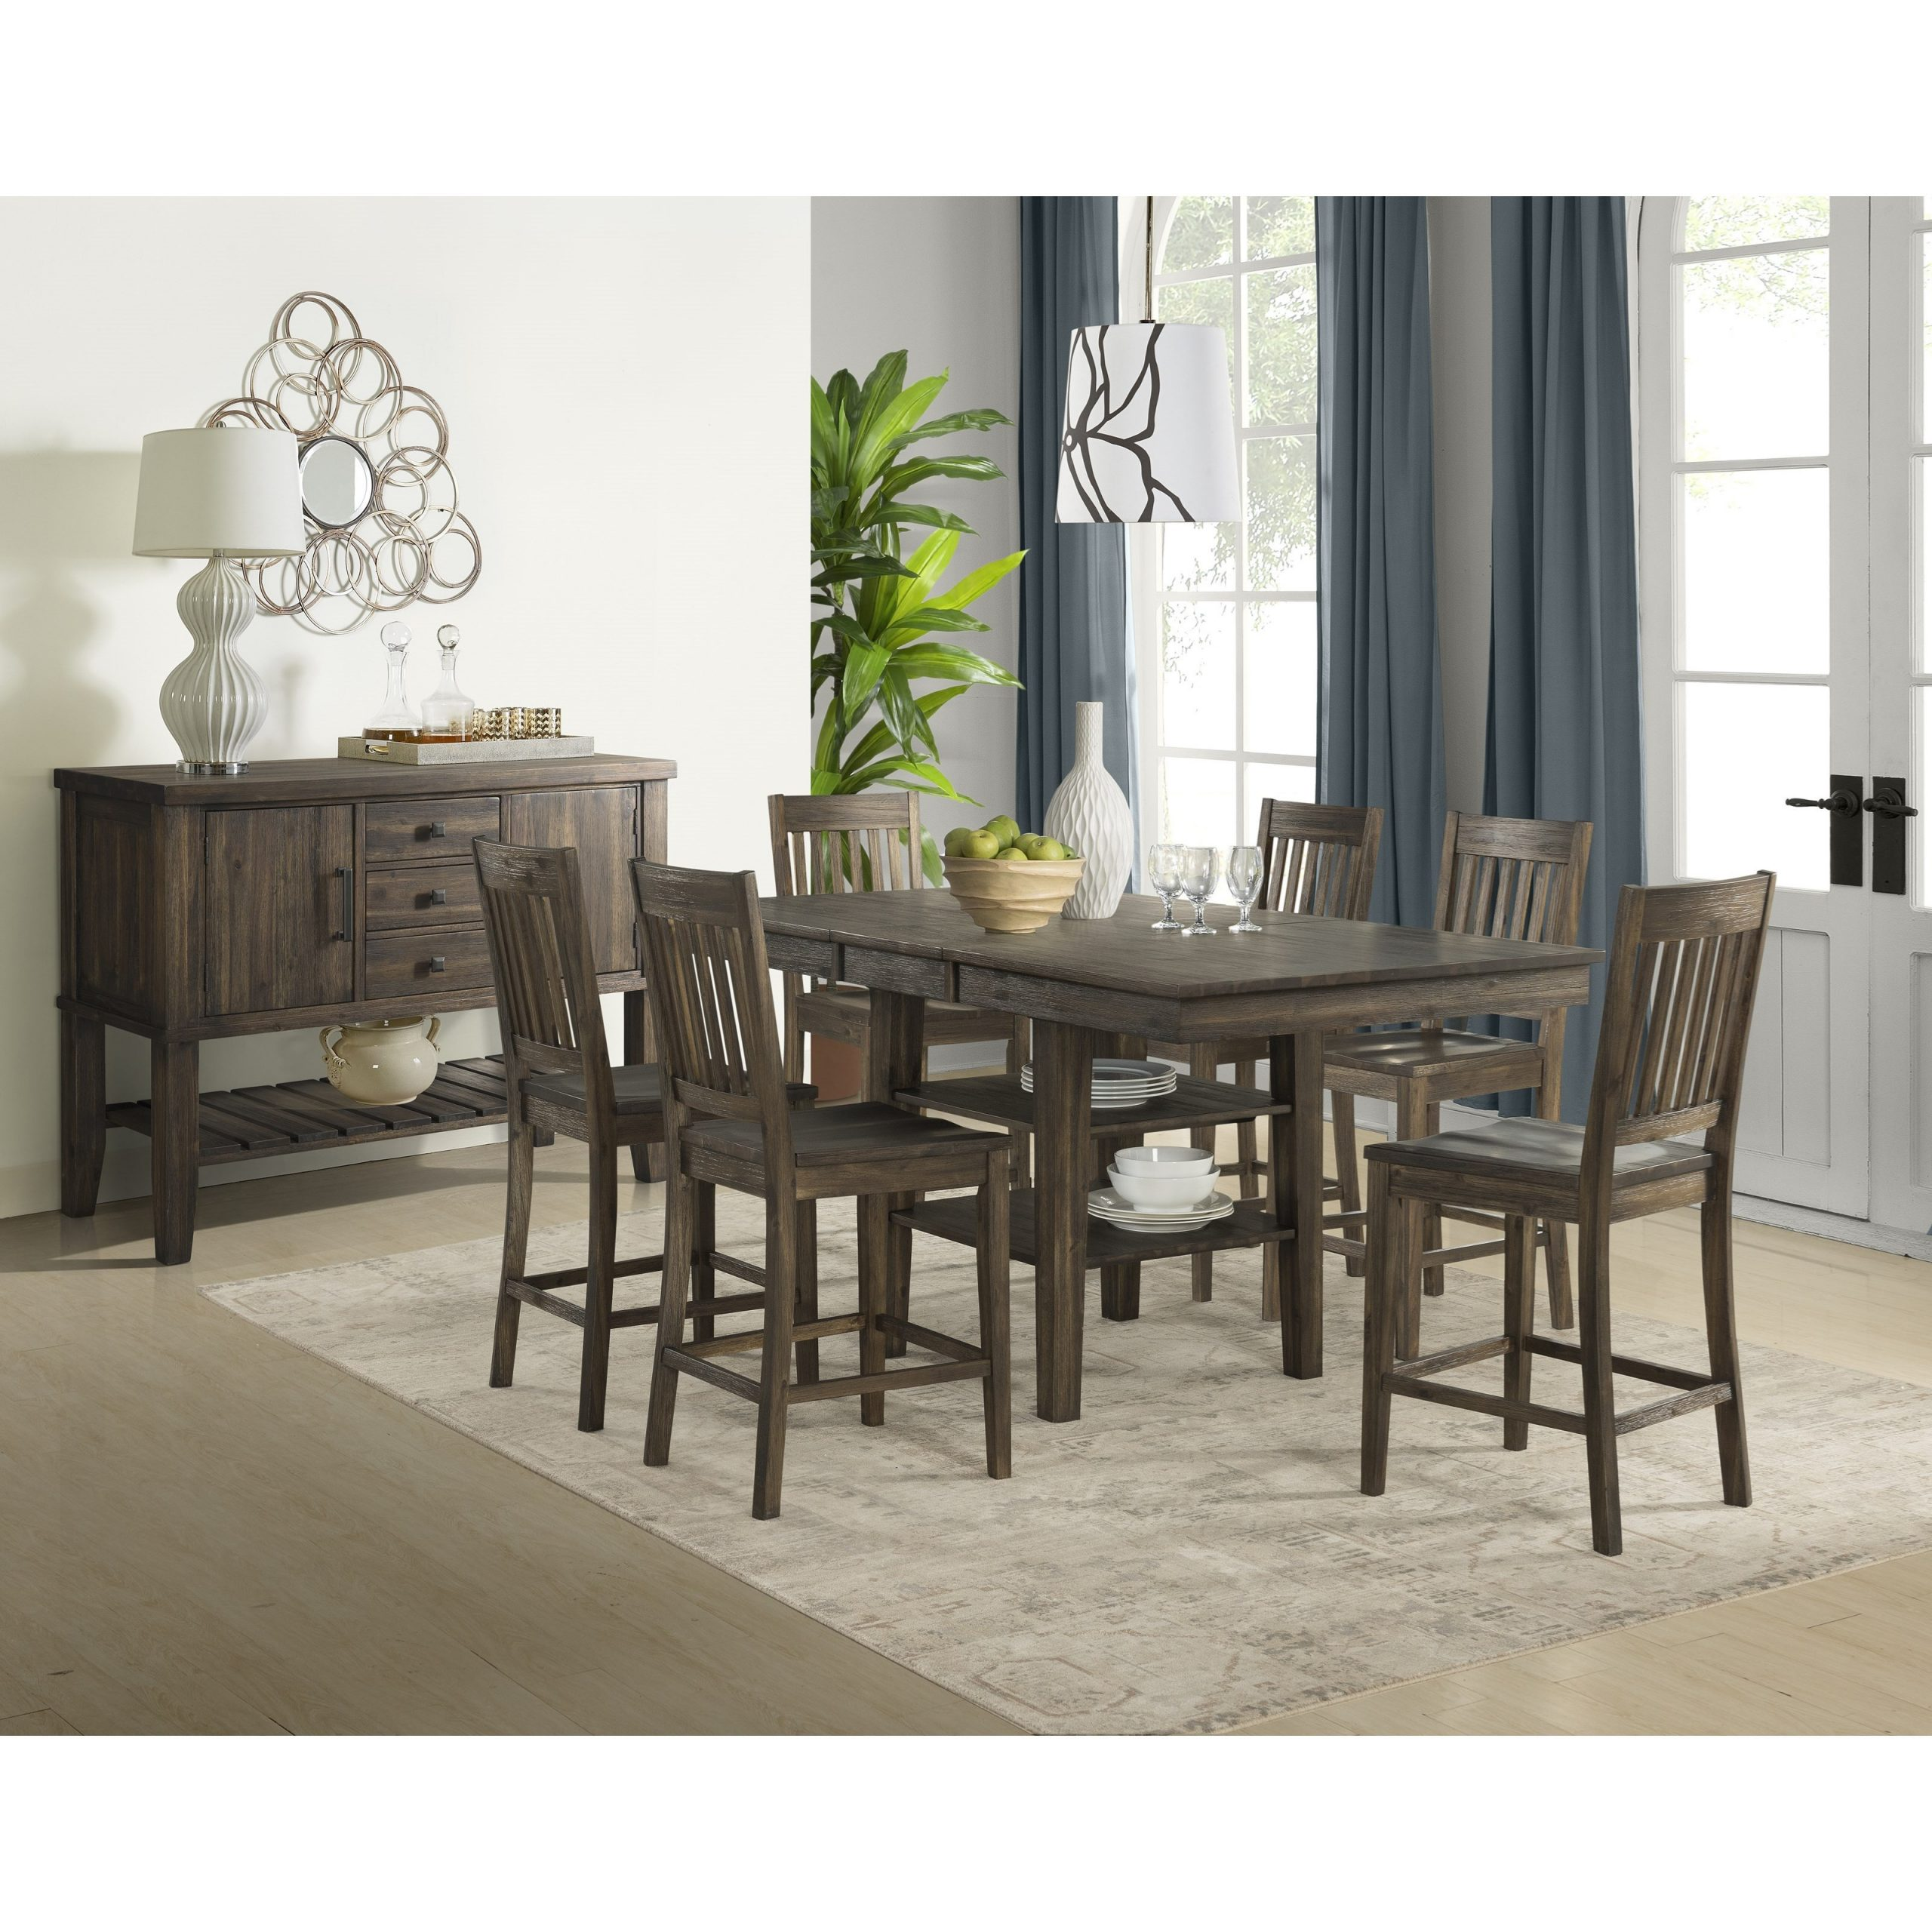 Aamerica Huron Transitional Solid Wood Counter Height In Latest Dawid Counter Height Pedestal Dining Tables (View 2 of 15)